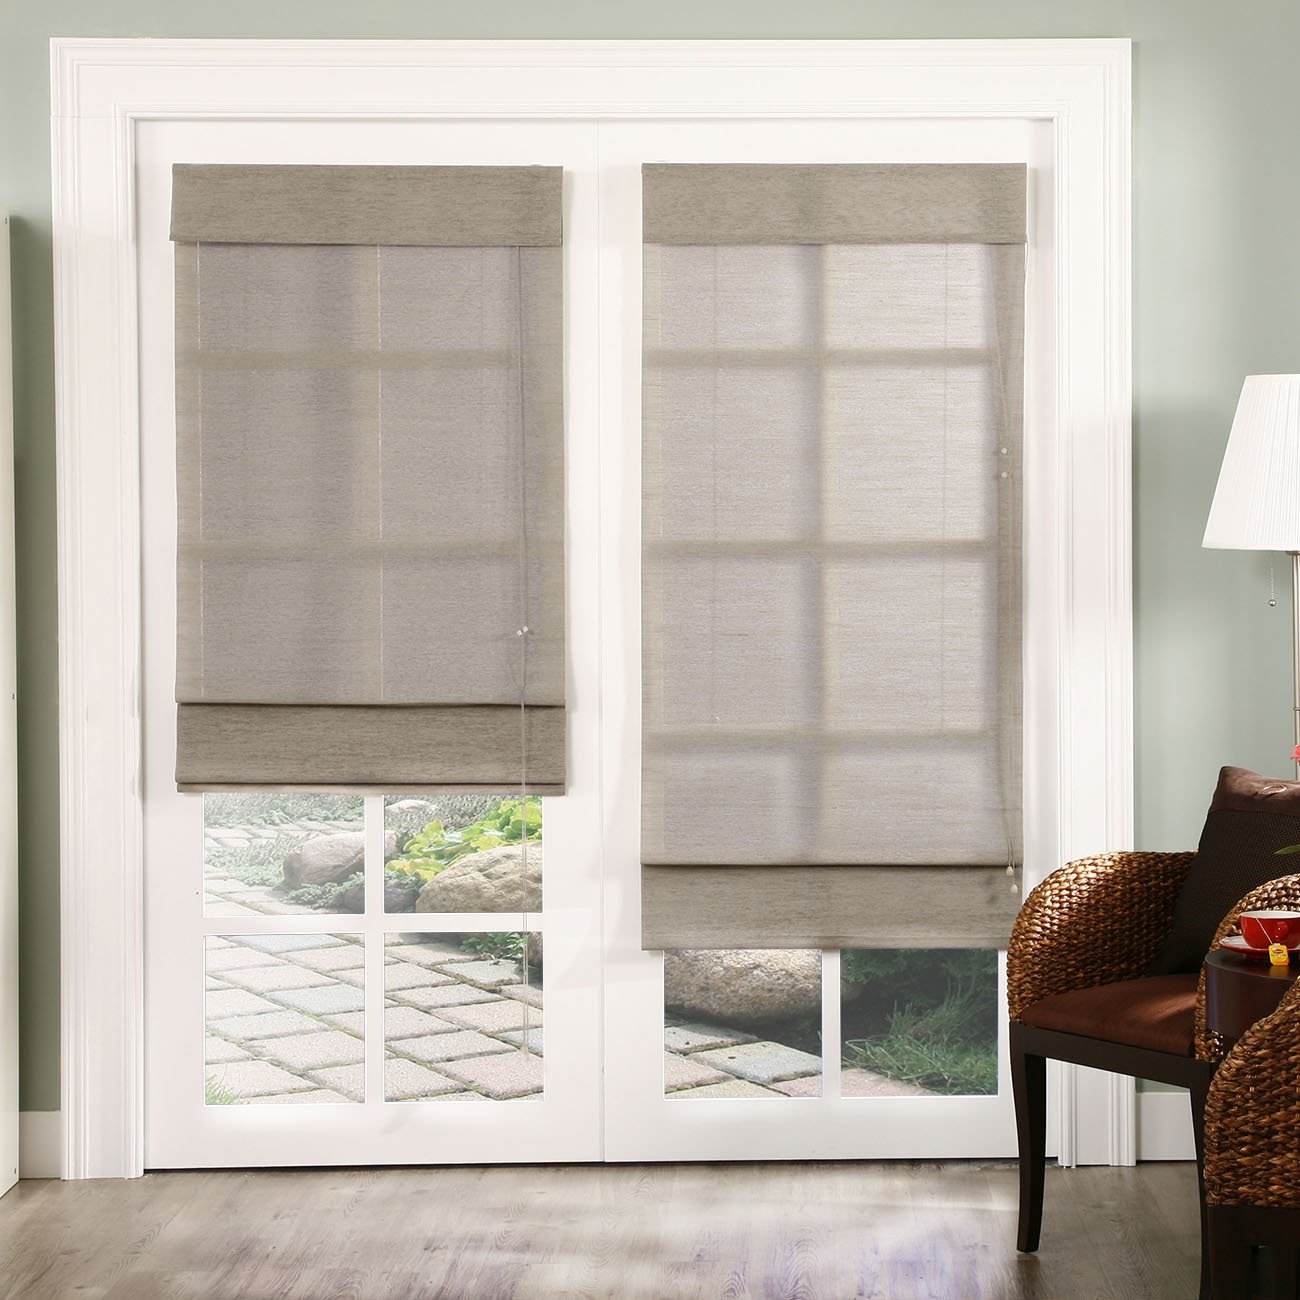 Fabric Roman shades for every home